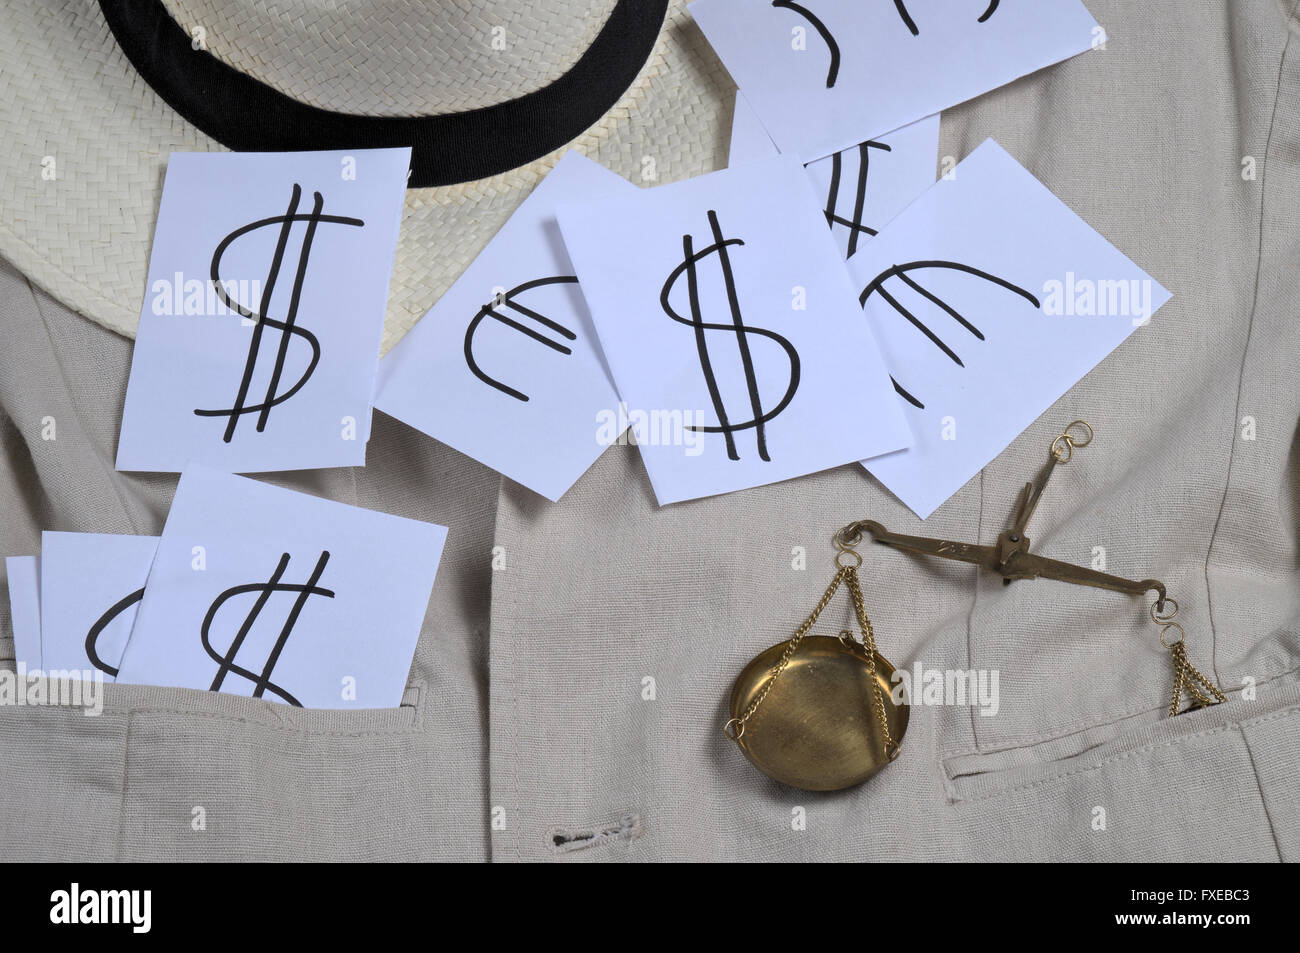 Financial crime, Panama papers scandal theme. Justice, business and finances. - Stock Image